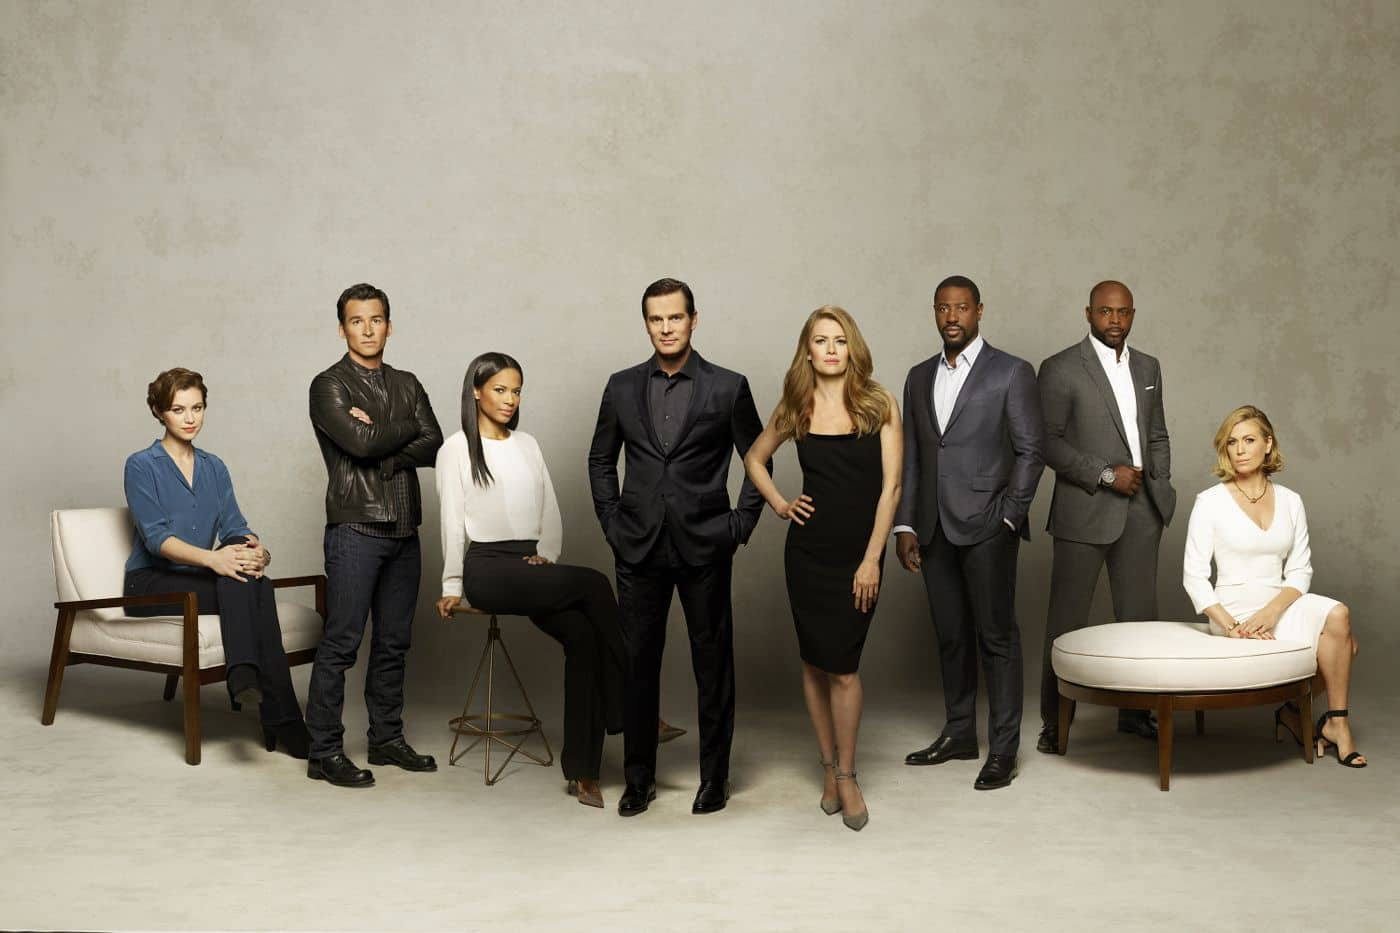 """THE CATCH - ABC's """"The Catch"""" stars Elvy Yost as Sophie, Jay Hayden as Danny, Rose Rollins as Valerie, Peter Krause as Benjamin, Mireille Enos as Alice, Jackie Ido as Jules, Alimi Ballard as Reggie and Sonya Walger as Margot. (ABC/Craig Sjodin)"""